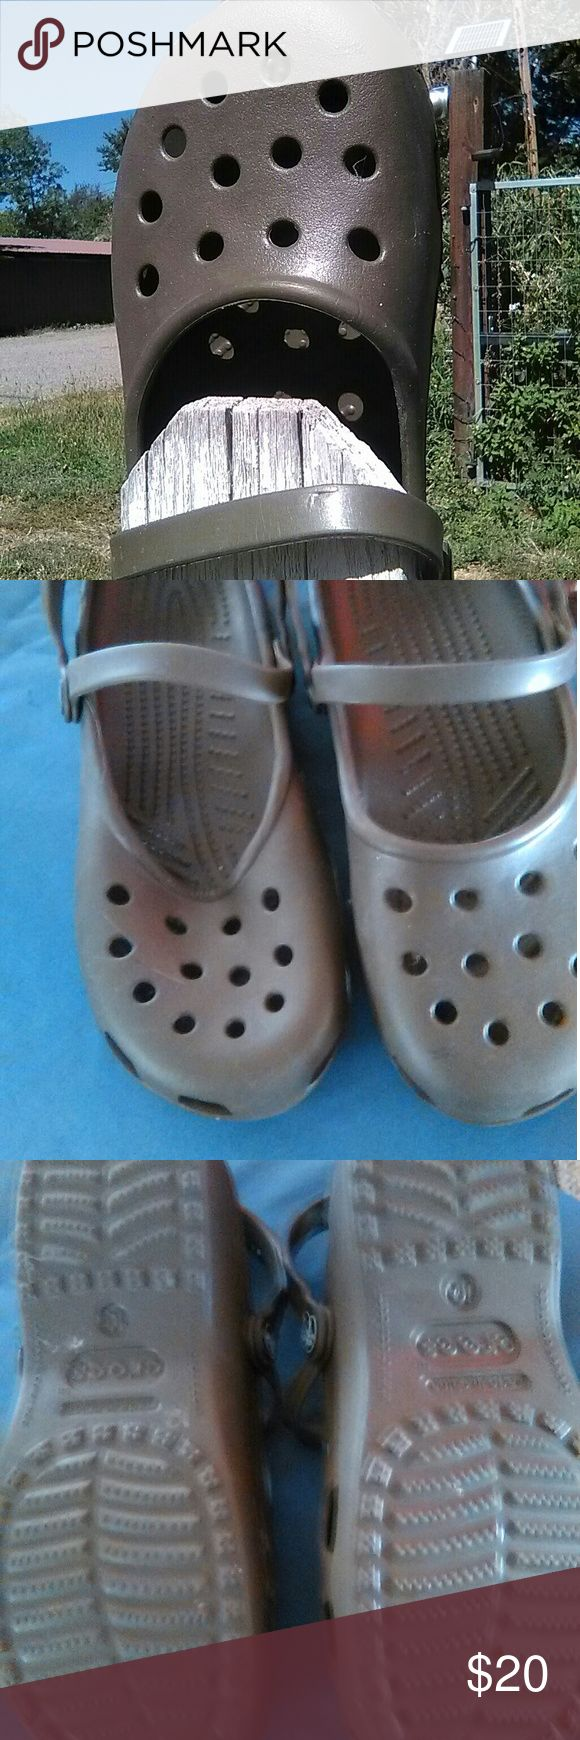 Authentic Crocs shoes. Crocs shoes with dual straps. Green/grey color.  Size 10. Please note the right one has a dip in the top. Does not affect the comfort of the shoe. CROCS Shoes Sandals